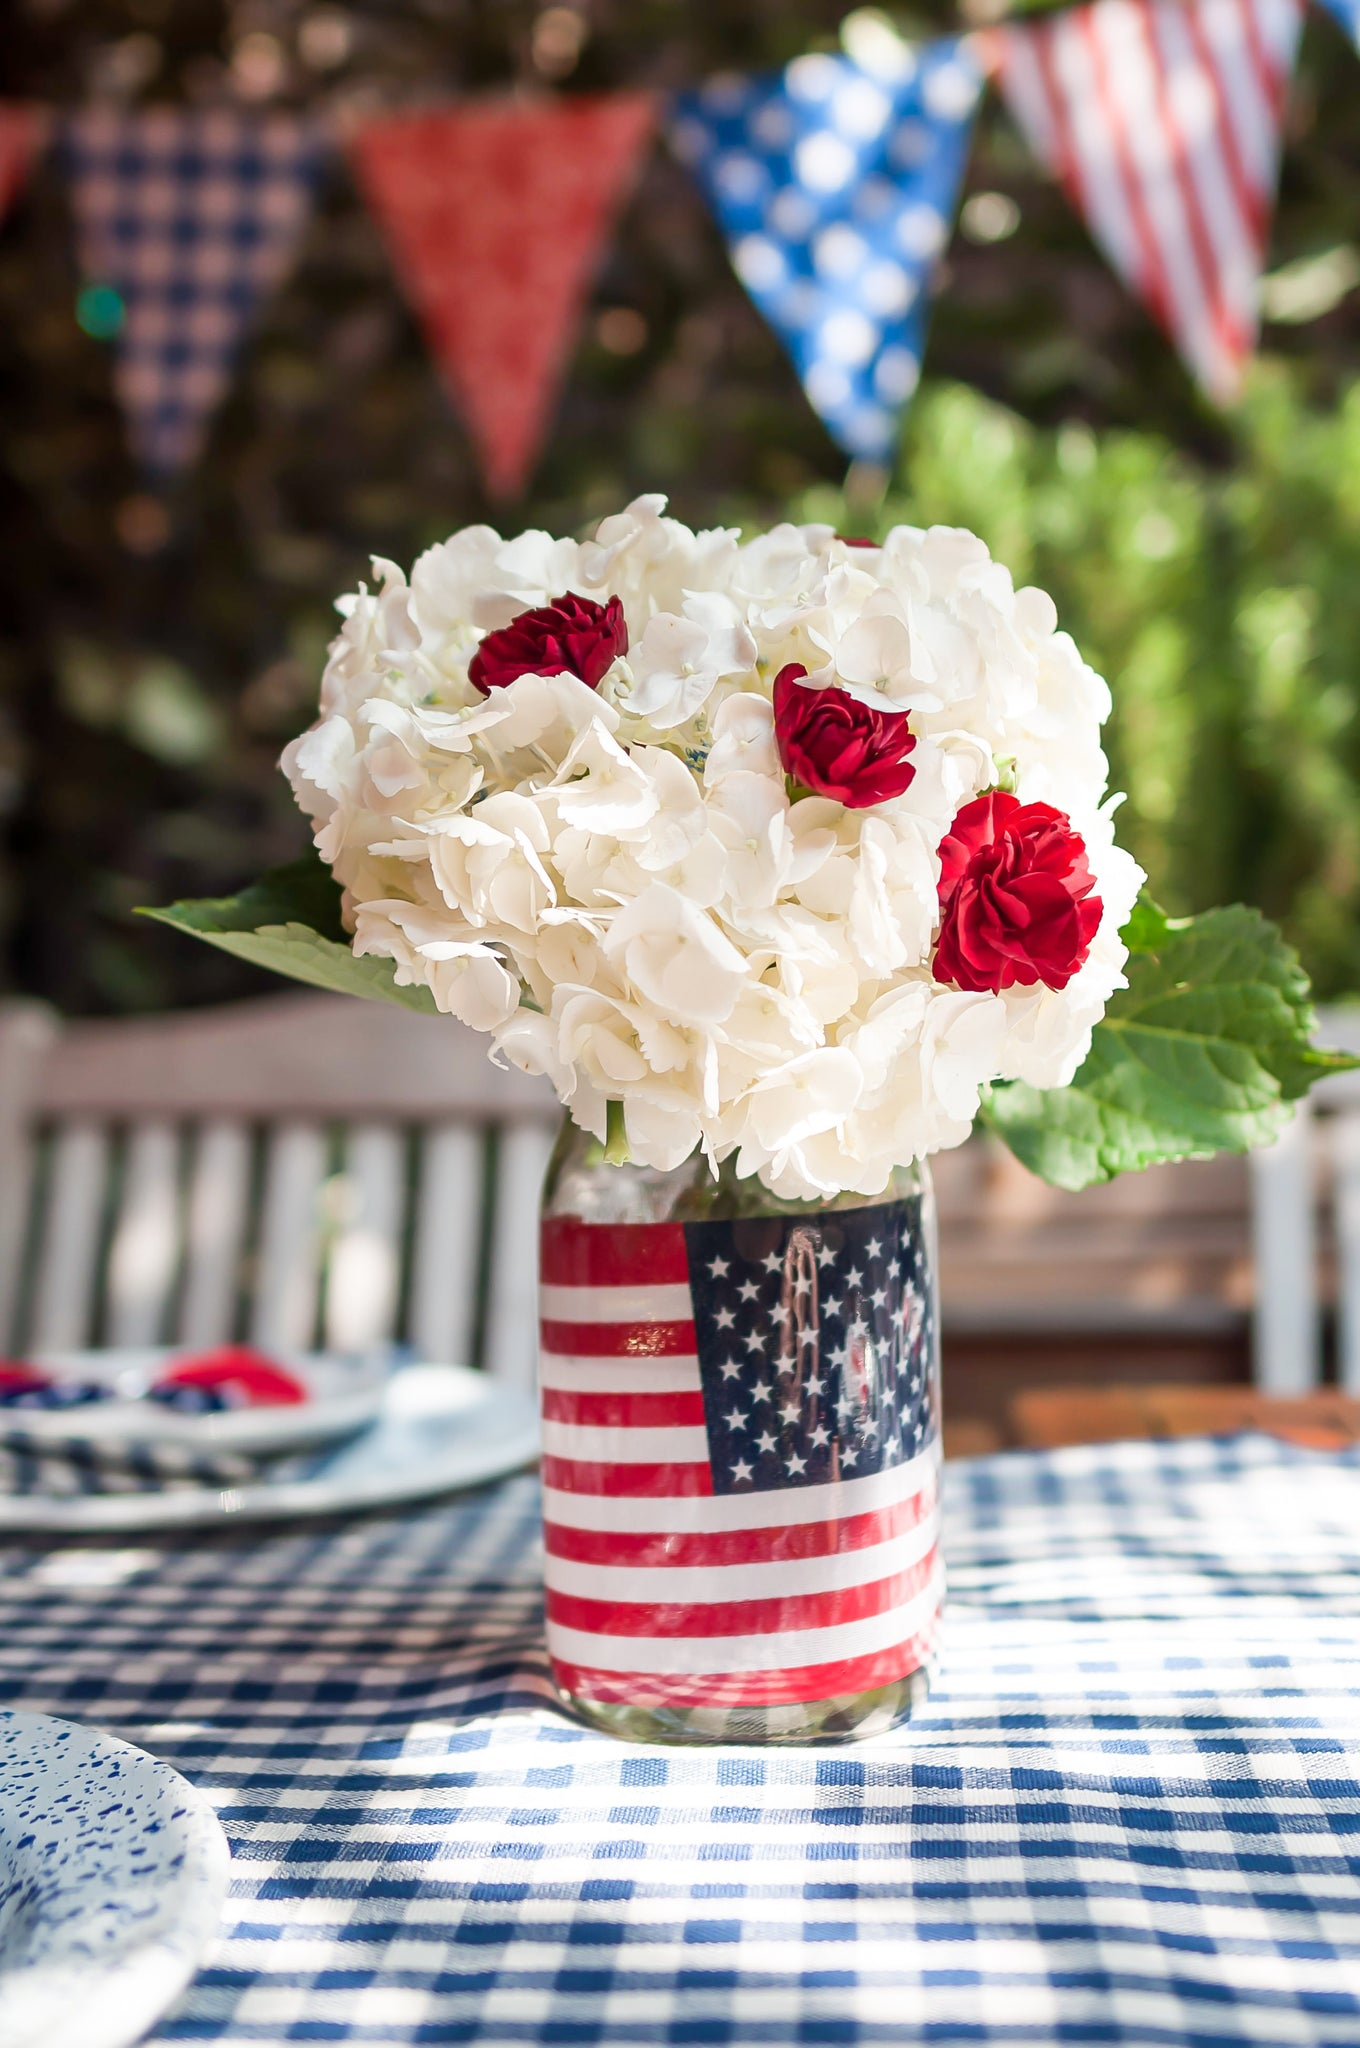 Easy DIY Centerpiece 4th of July Inspired